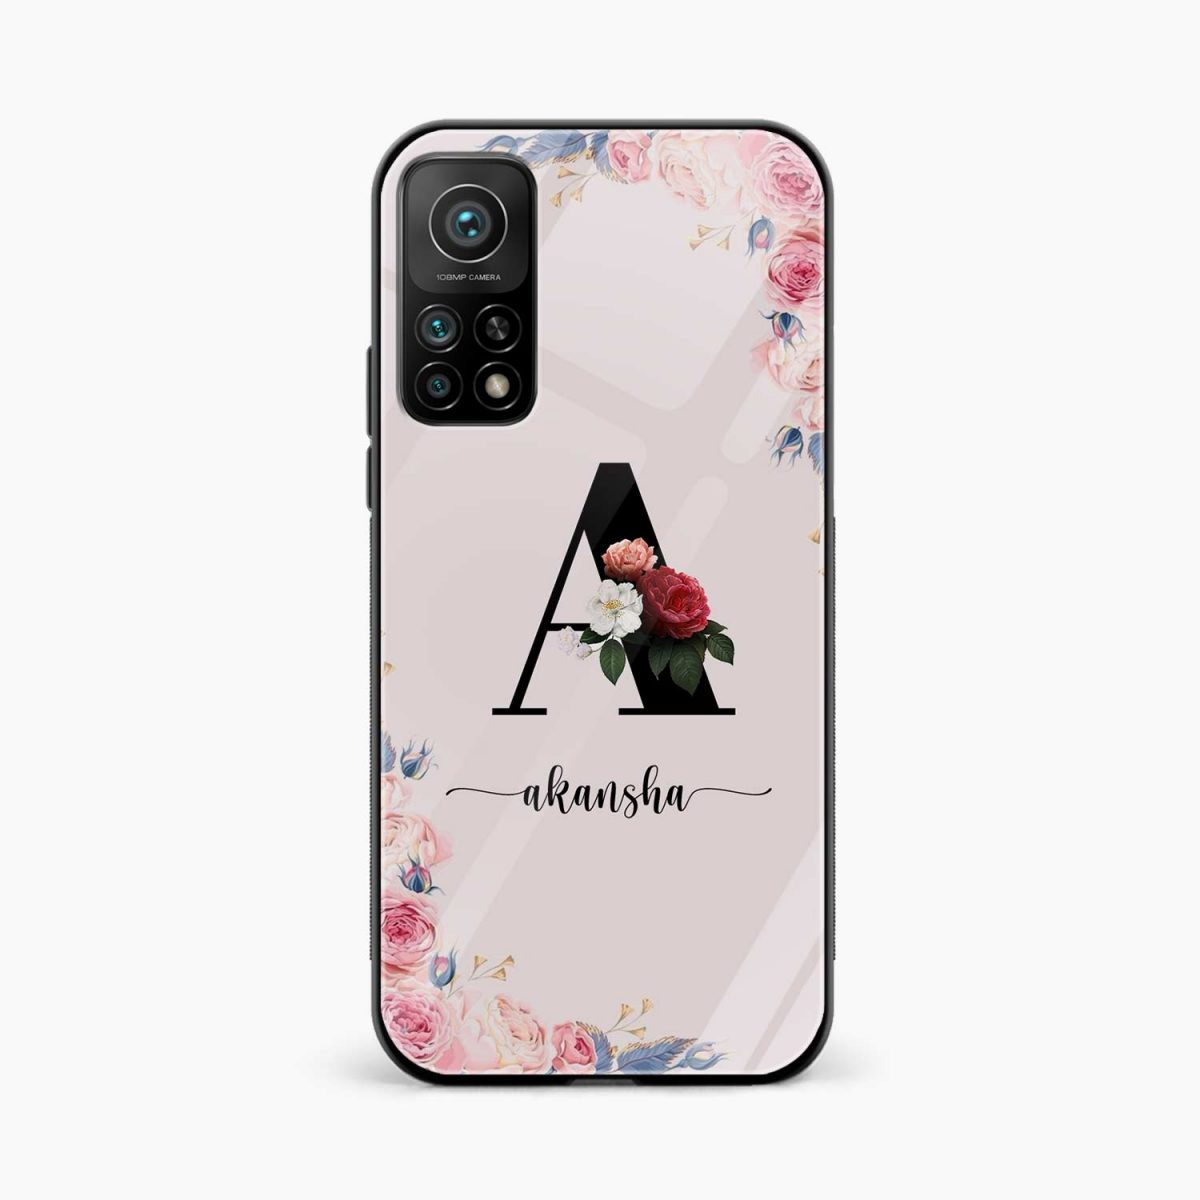 floral name personalised xiaomi mi 10t pro back cover front view